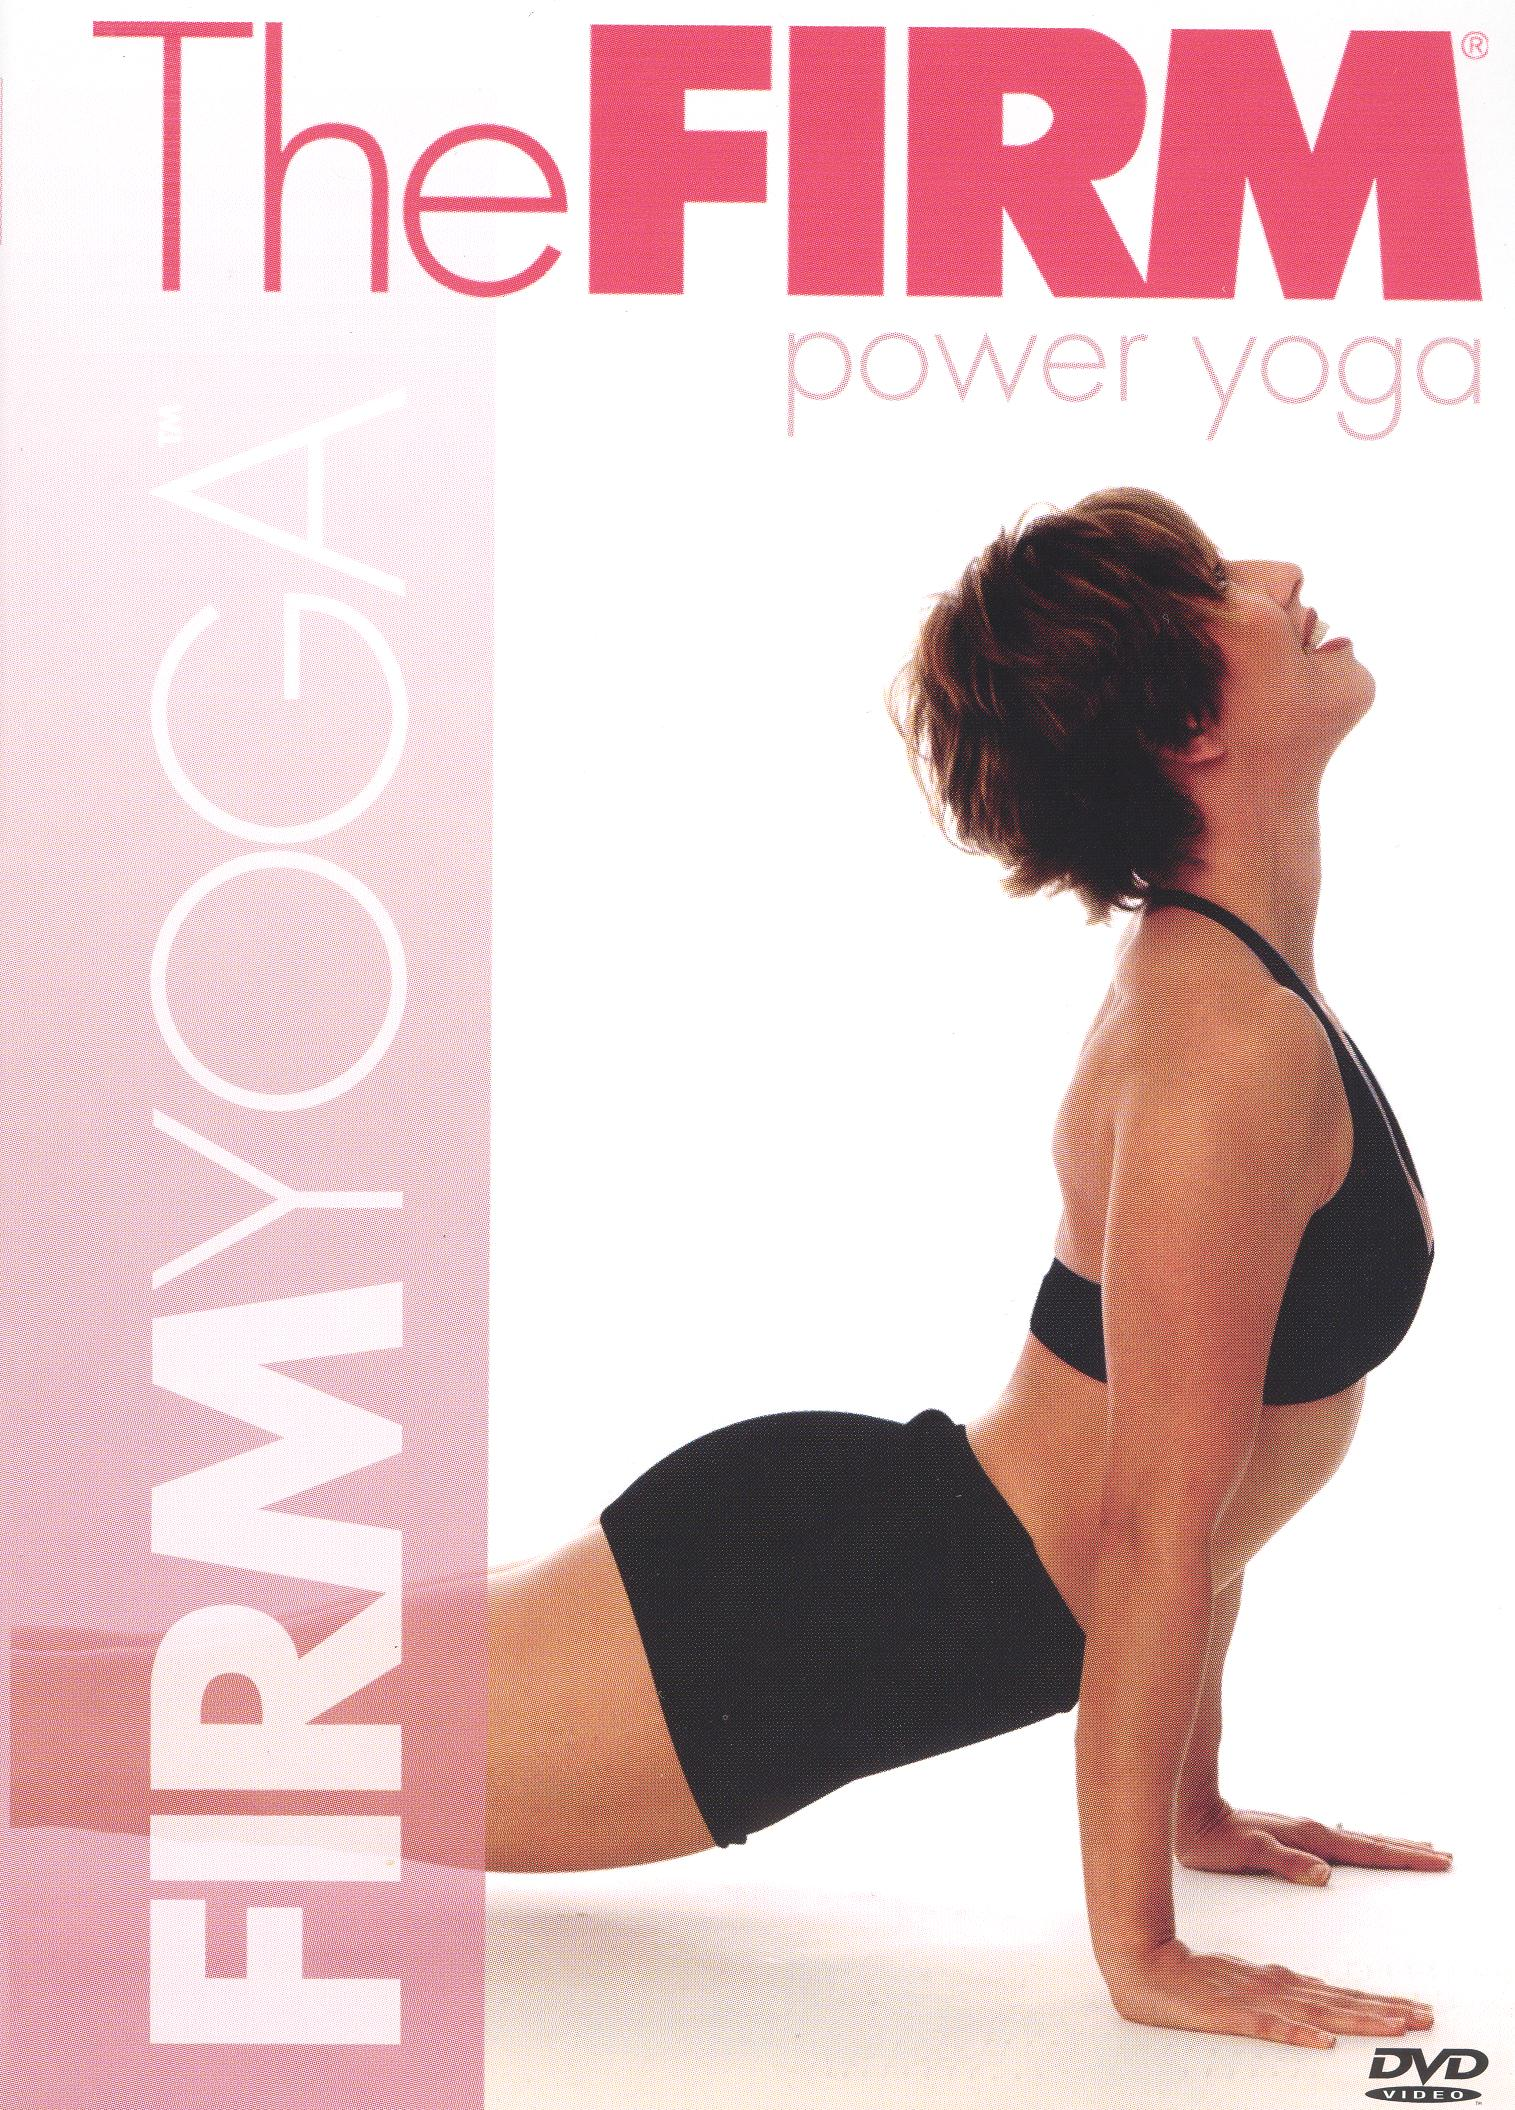 The Firm: Power Yoga